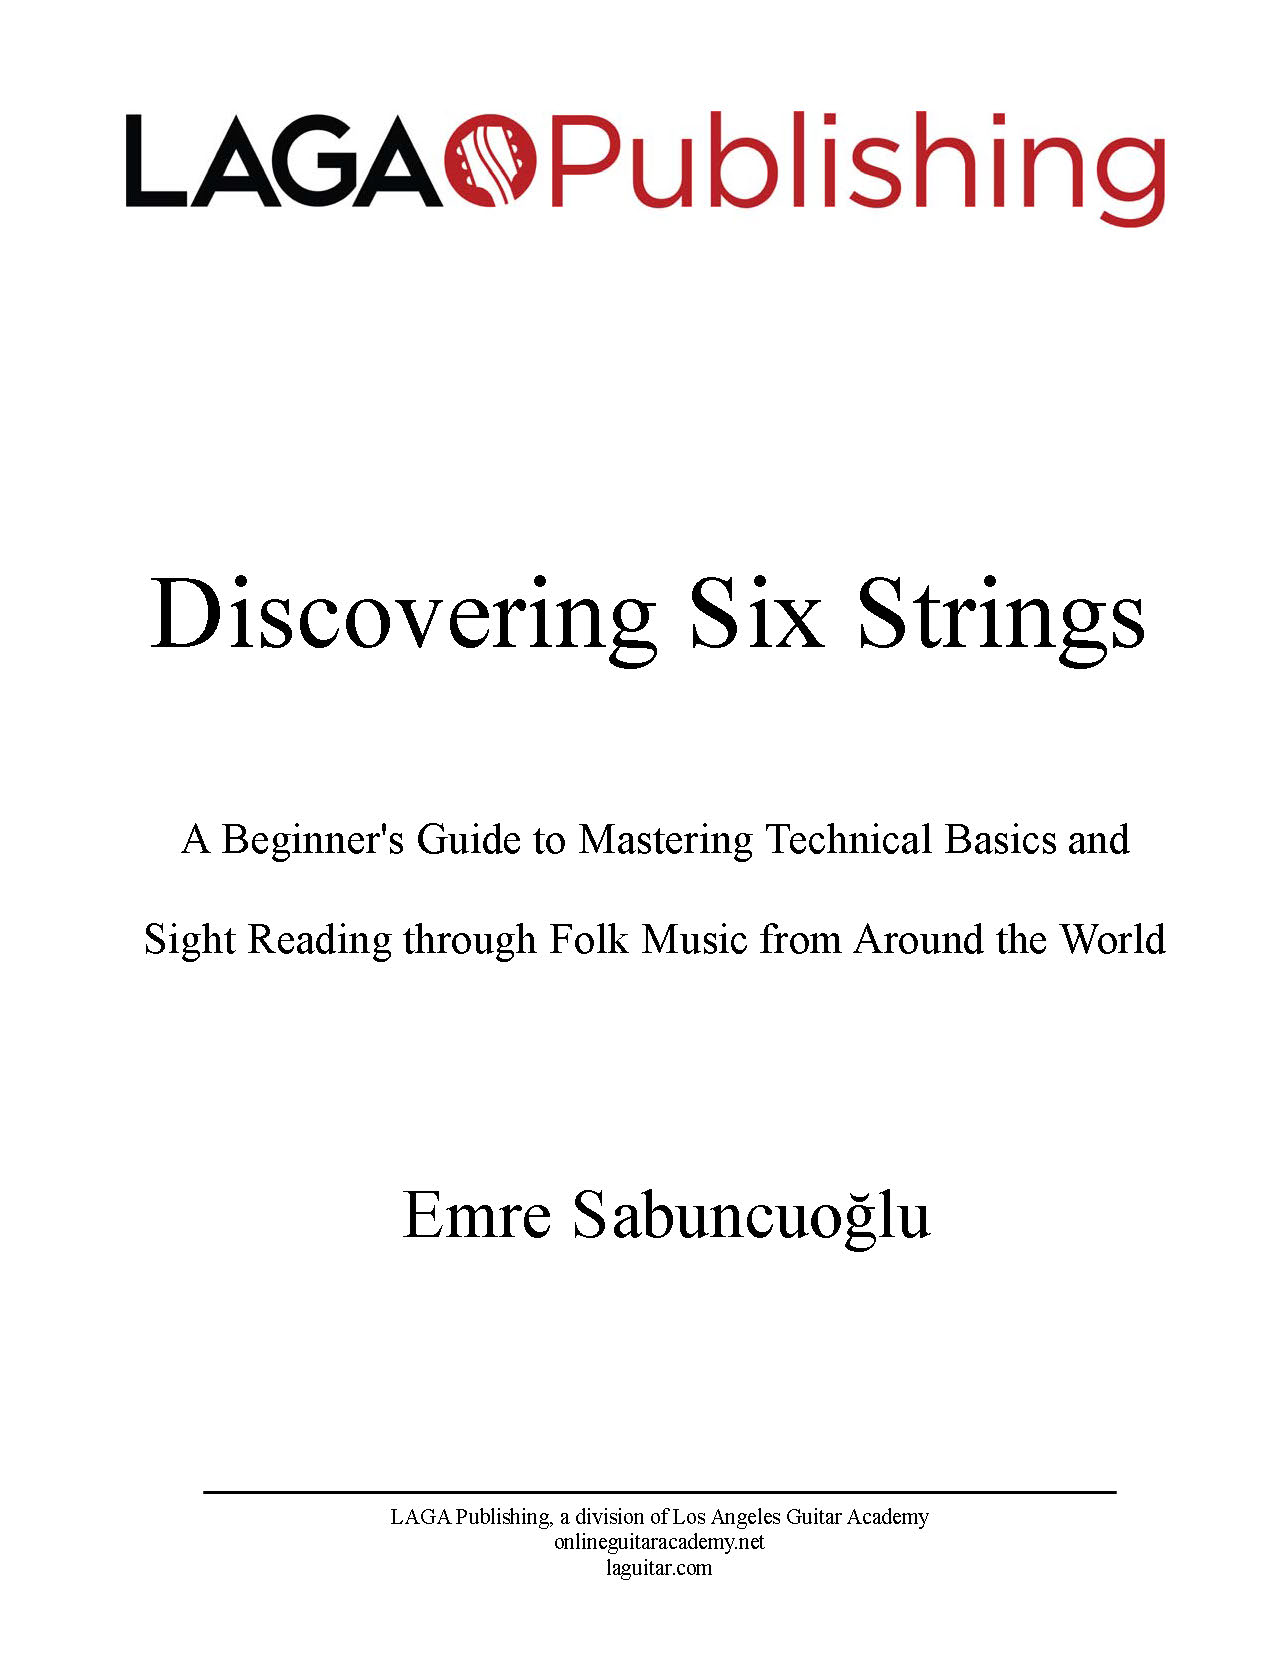 LAGA-Publishing-Discovering-Six-Strings_Page_01